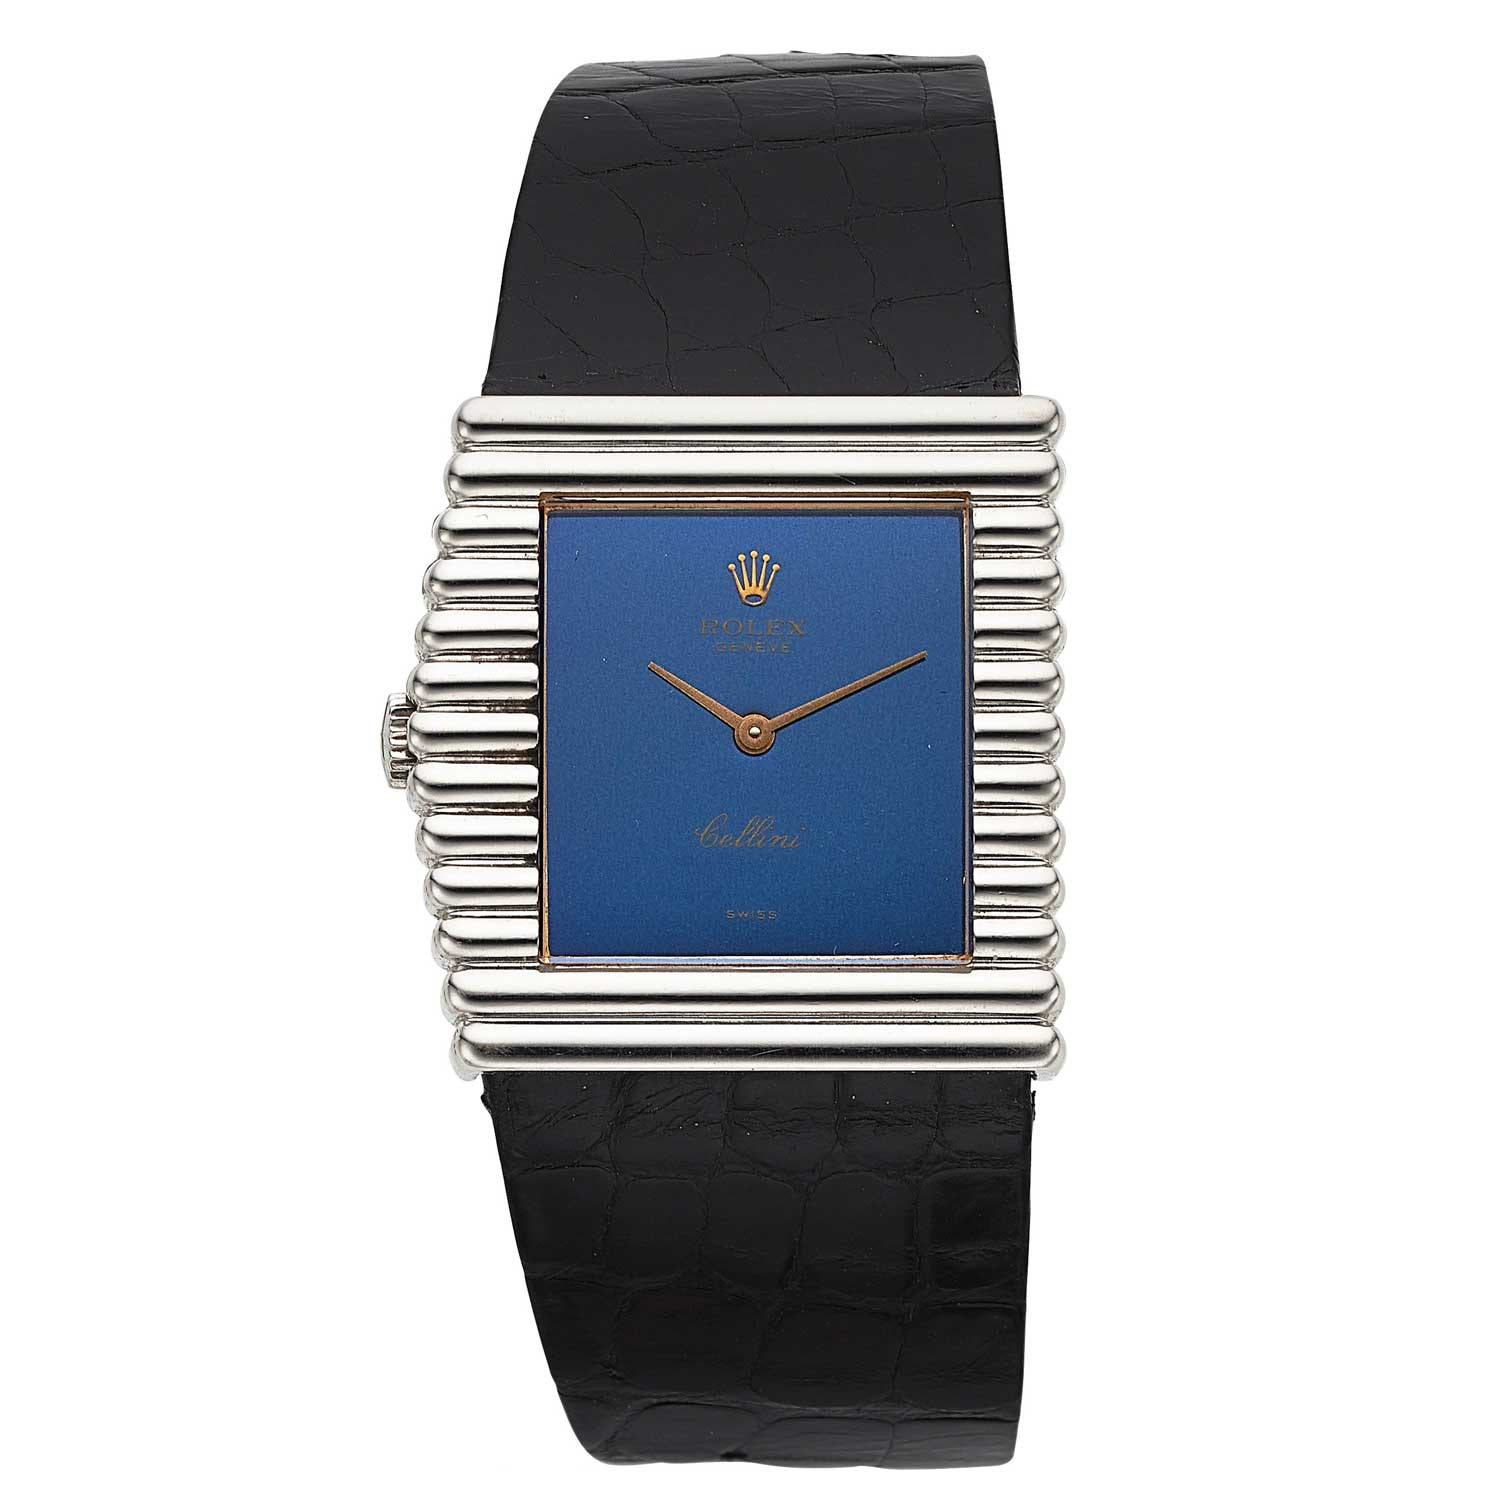 Ref. 4015 in white gold with fluted bezel and blue dial, circa 1976